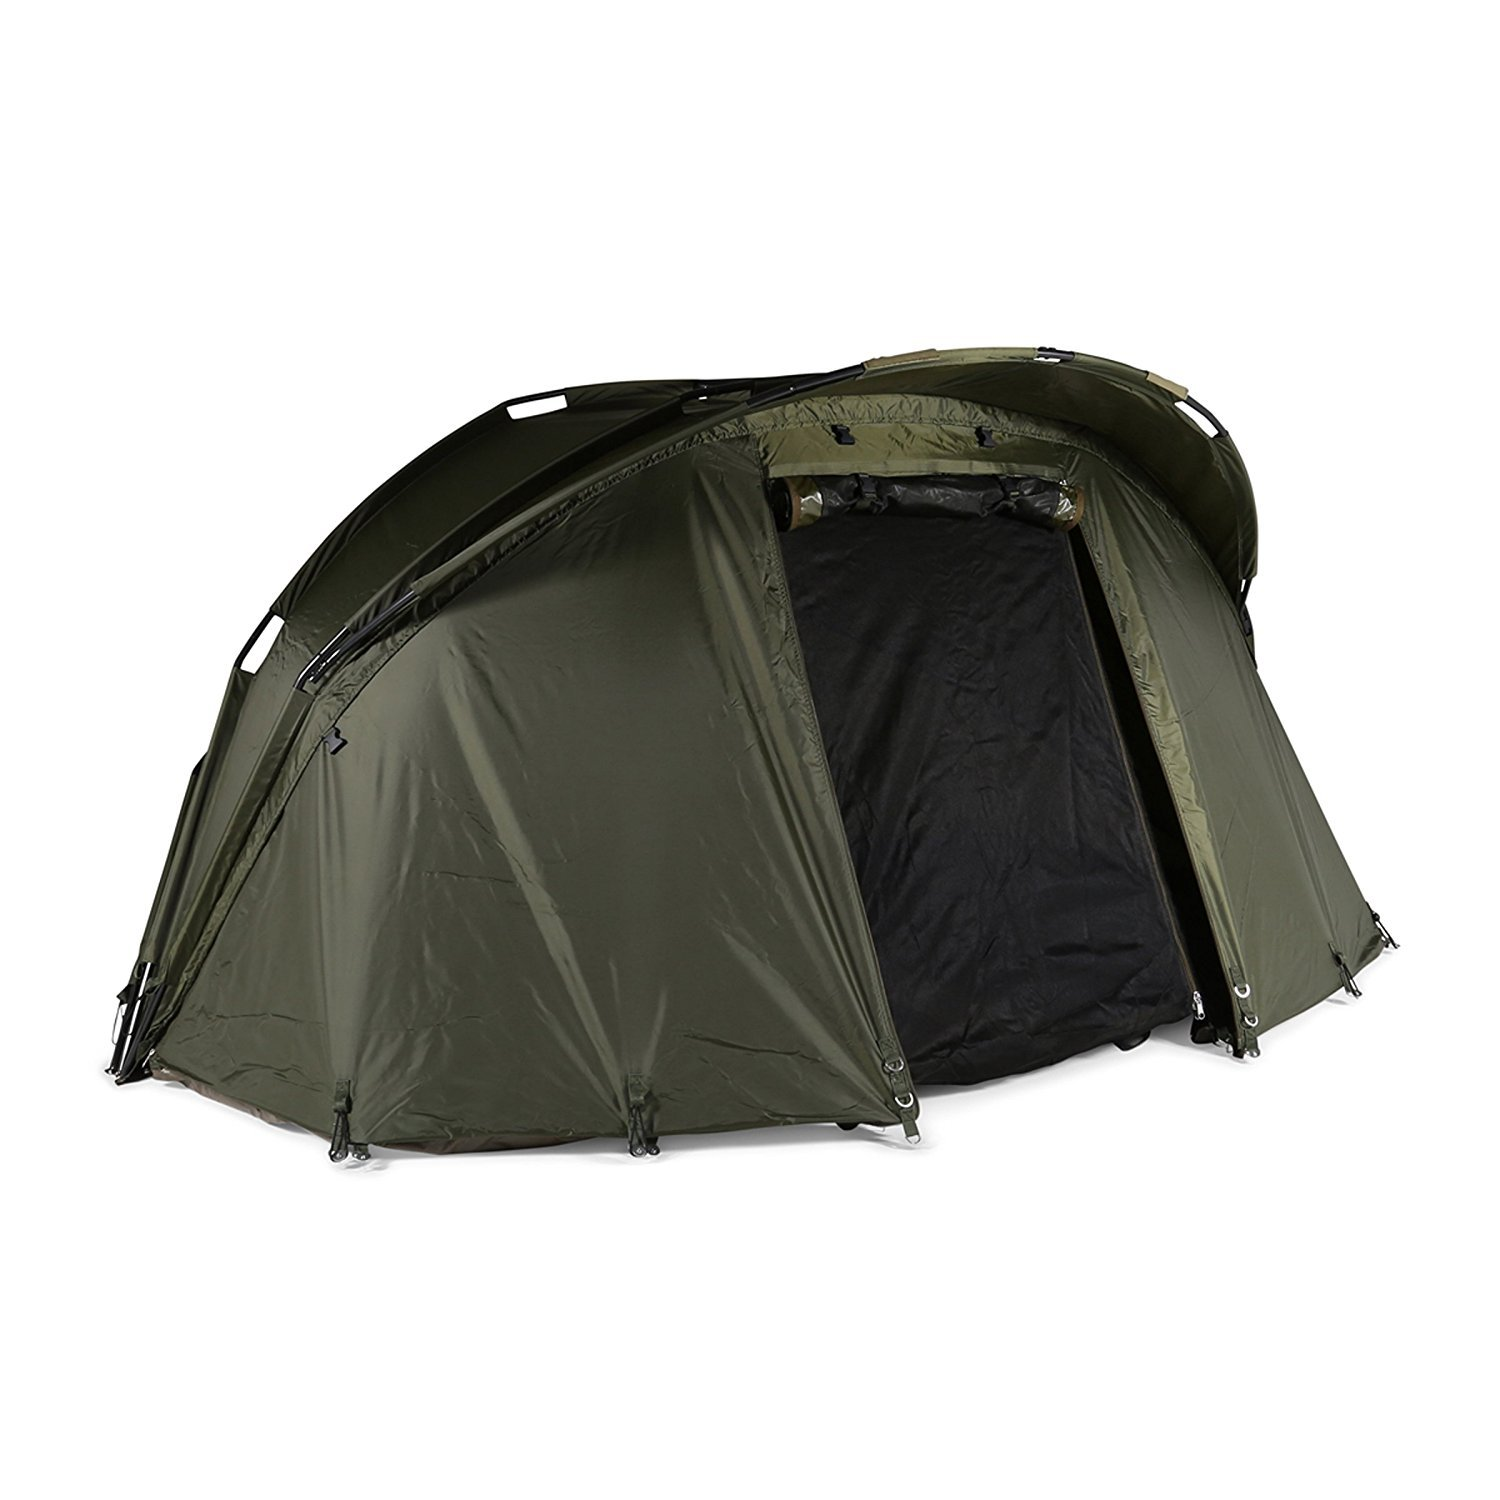 AMENITIES DEPOT 1 & 2 Person Tent Perfect for Traveling, Camping, Hiking & Outdoor